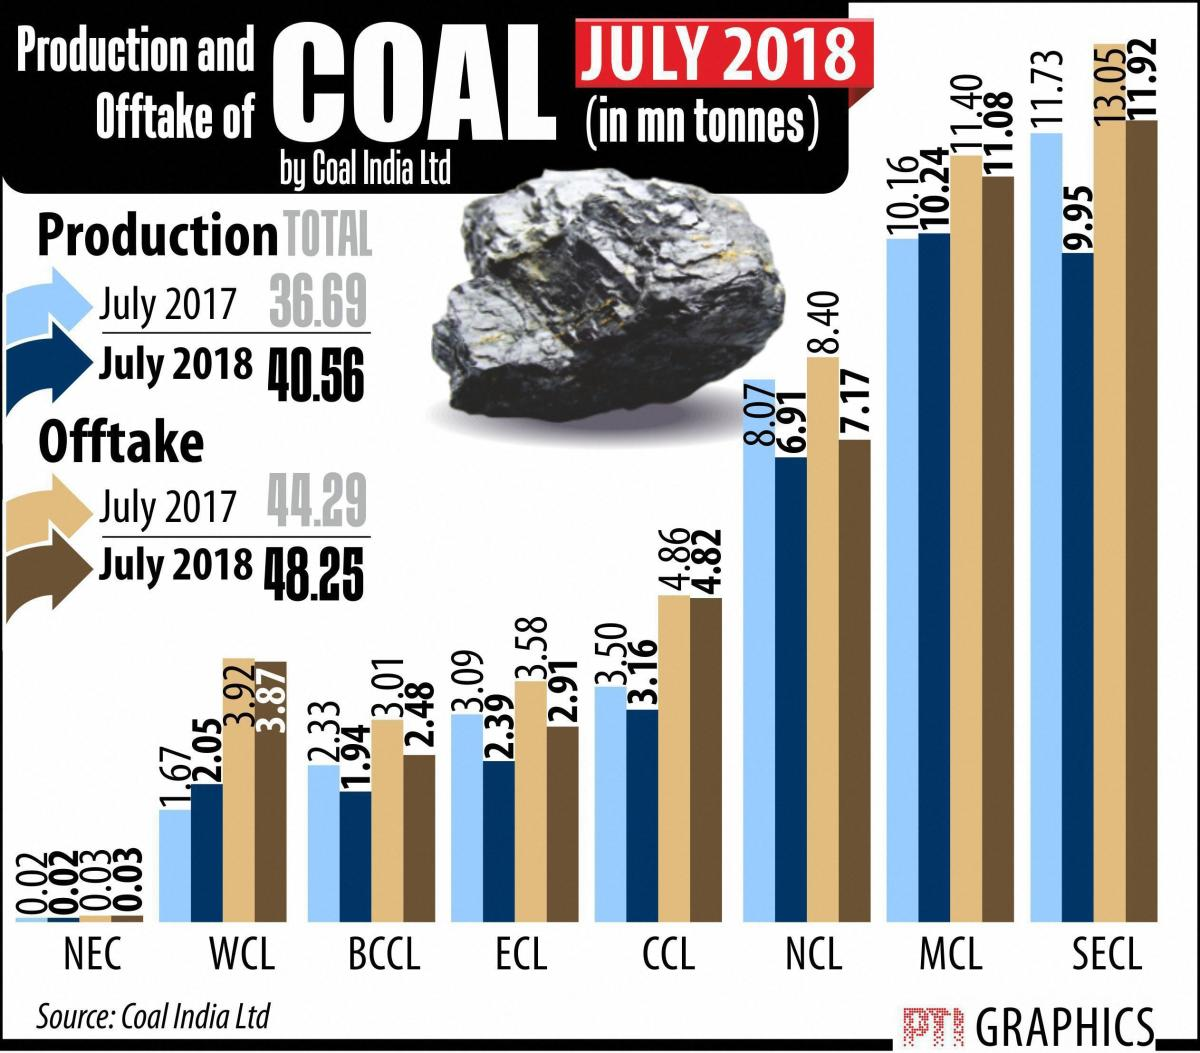 CIL had reported a net profit of Rs 2,350.78 crore in the same quarter of 2017-18.